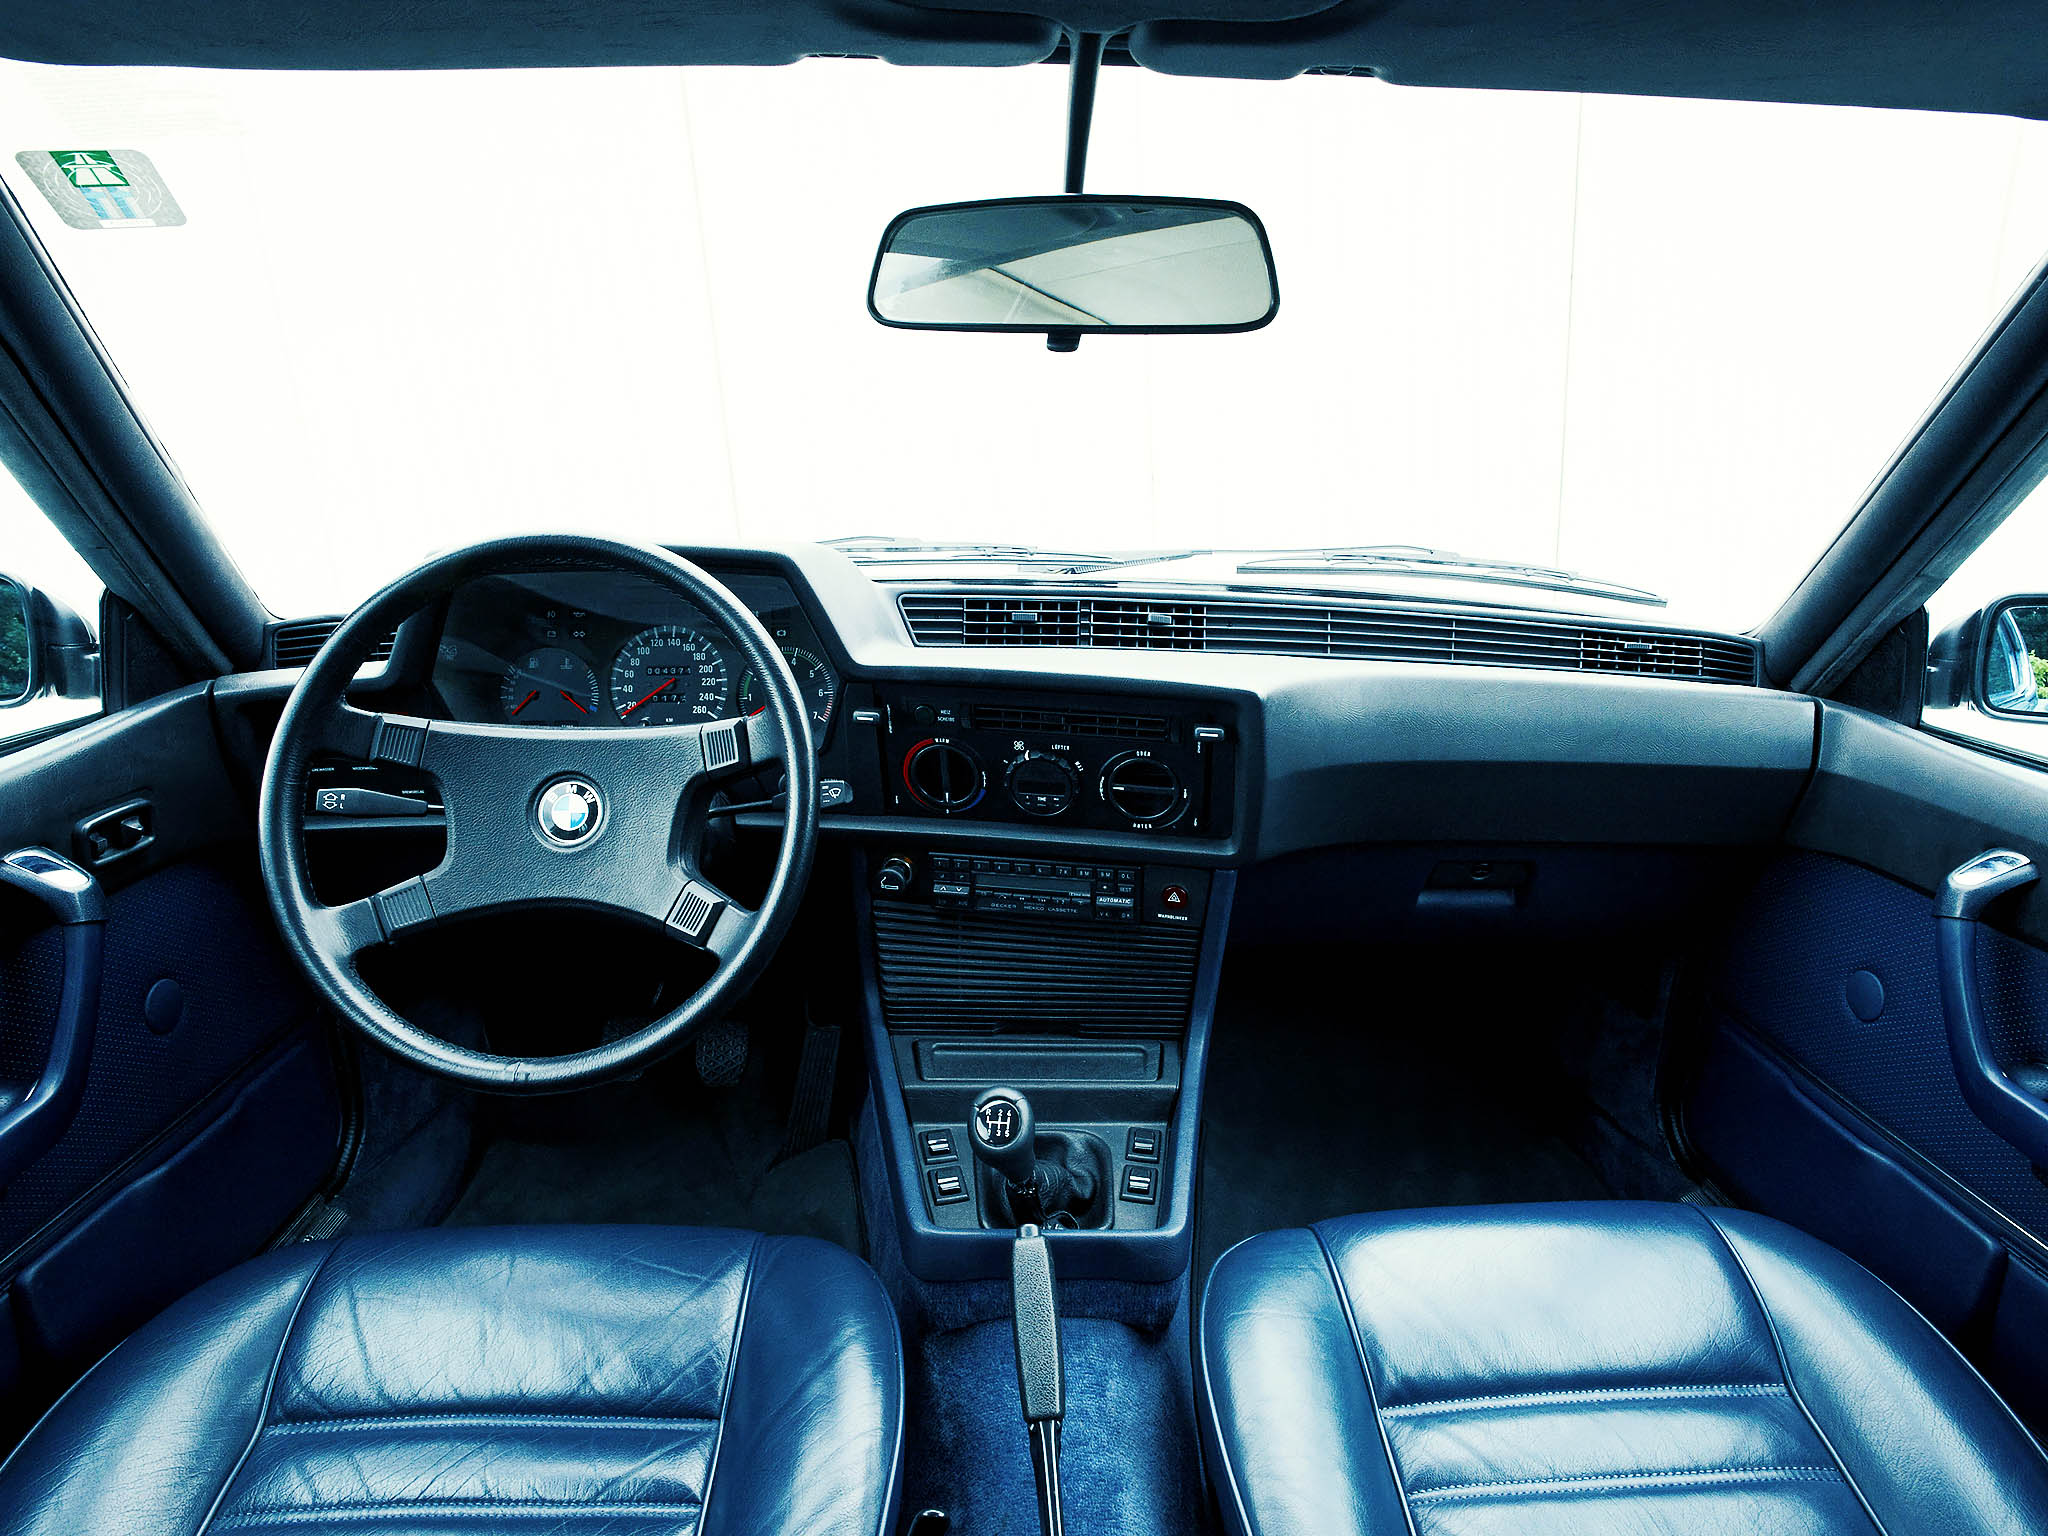 1987 bmw 635csi e24 1 full buying guide bmw e24 635csi engine, body, electric drive  at soozxer.org